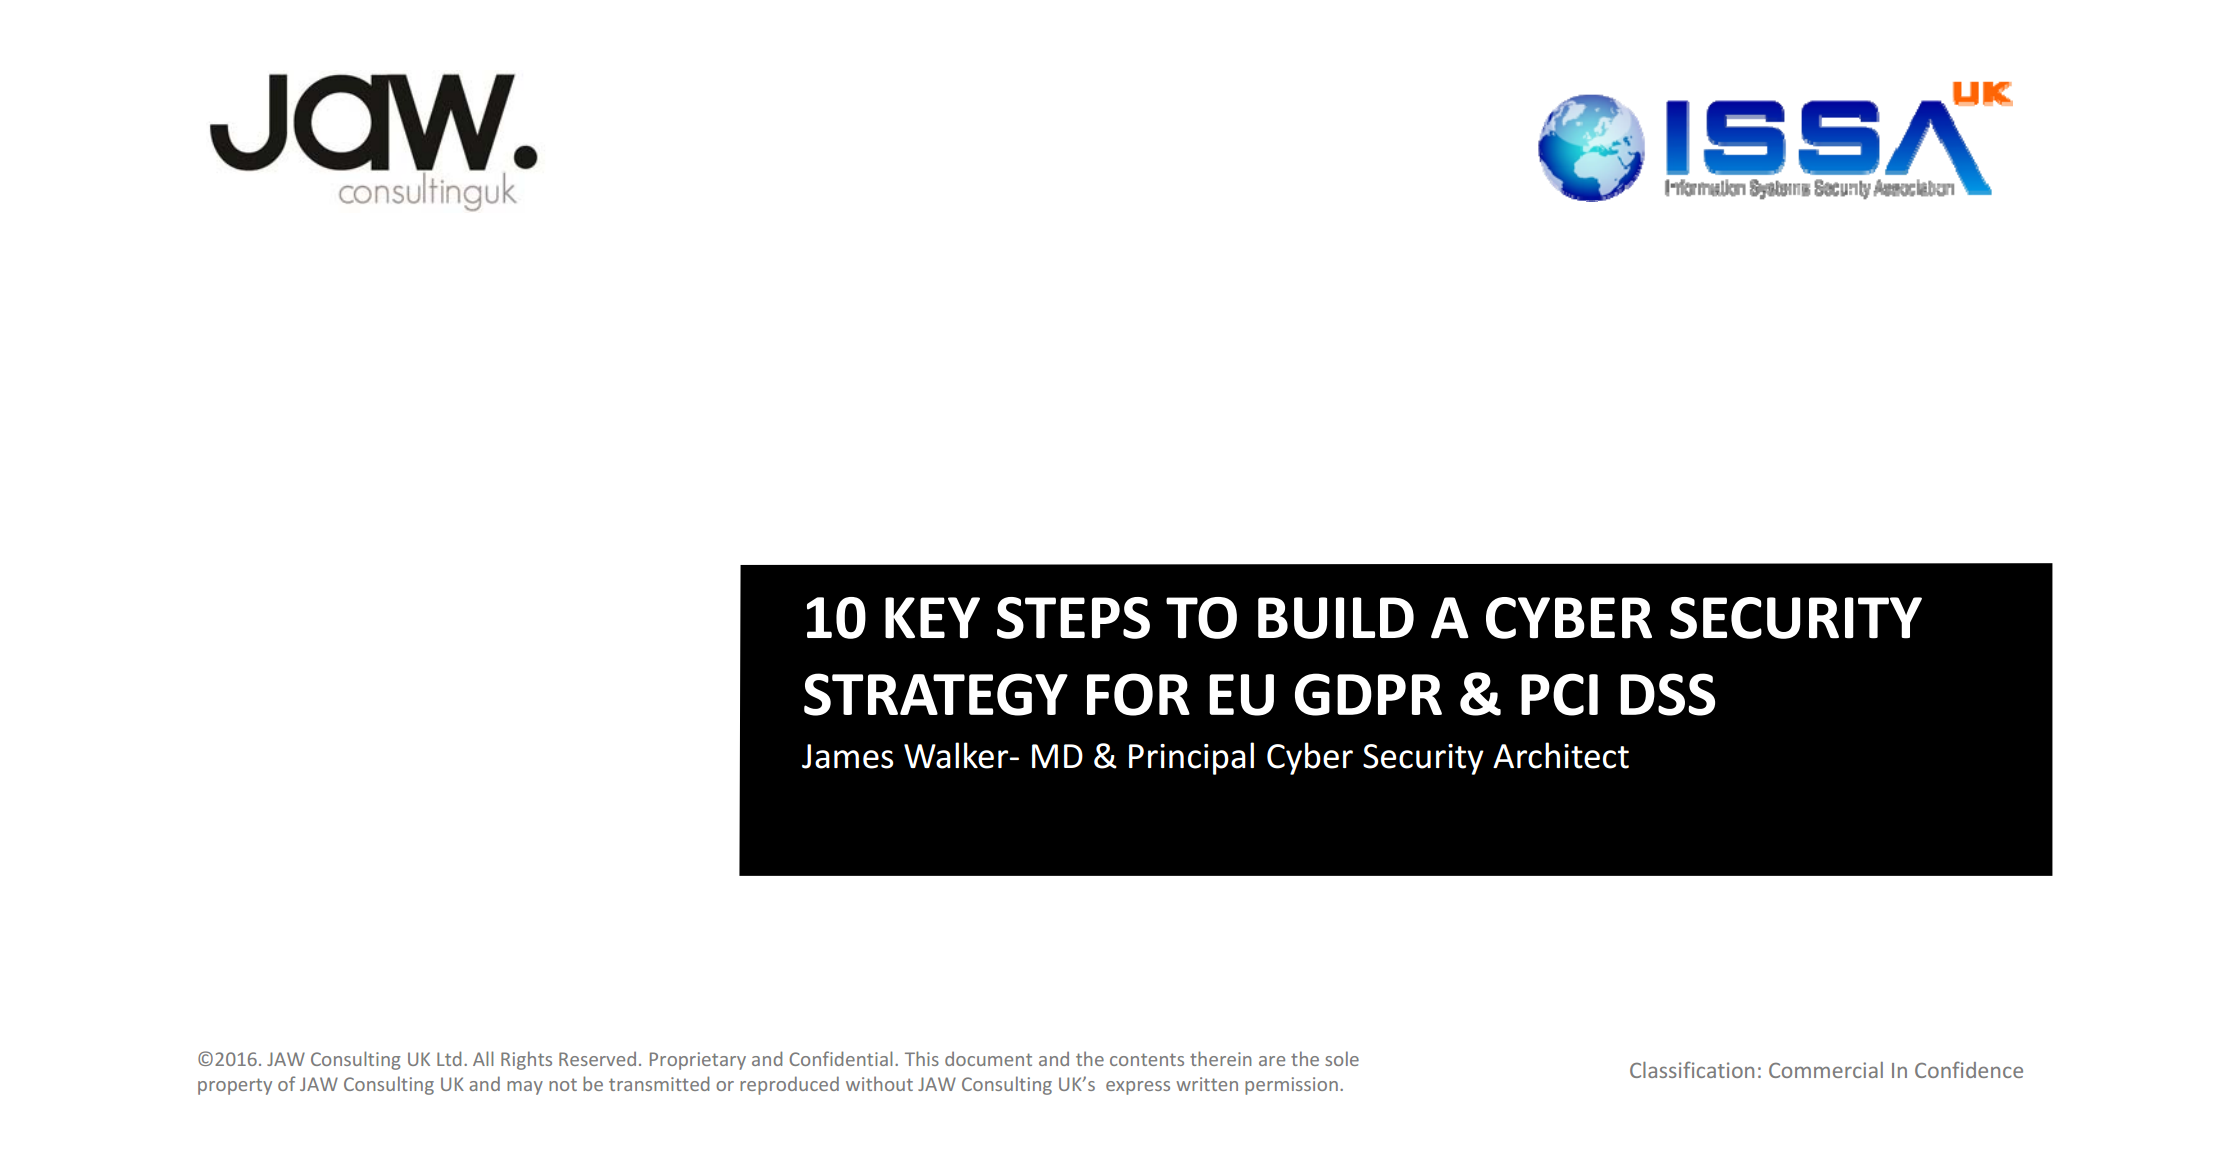 10 Key Steps to Build a Cyber Security Strategy for EU GDPR & PCI DSS